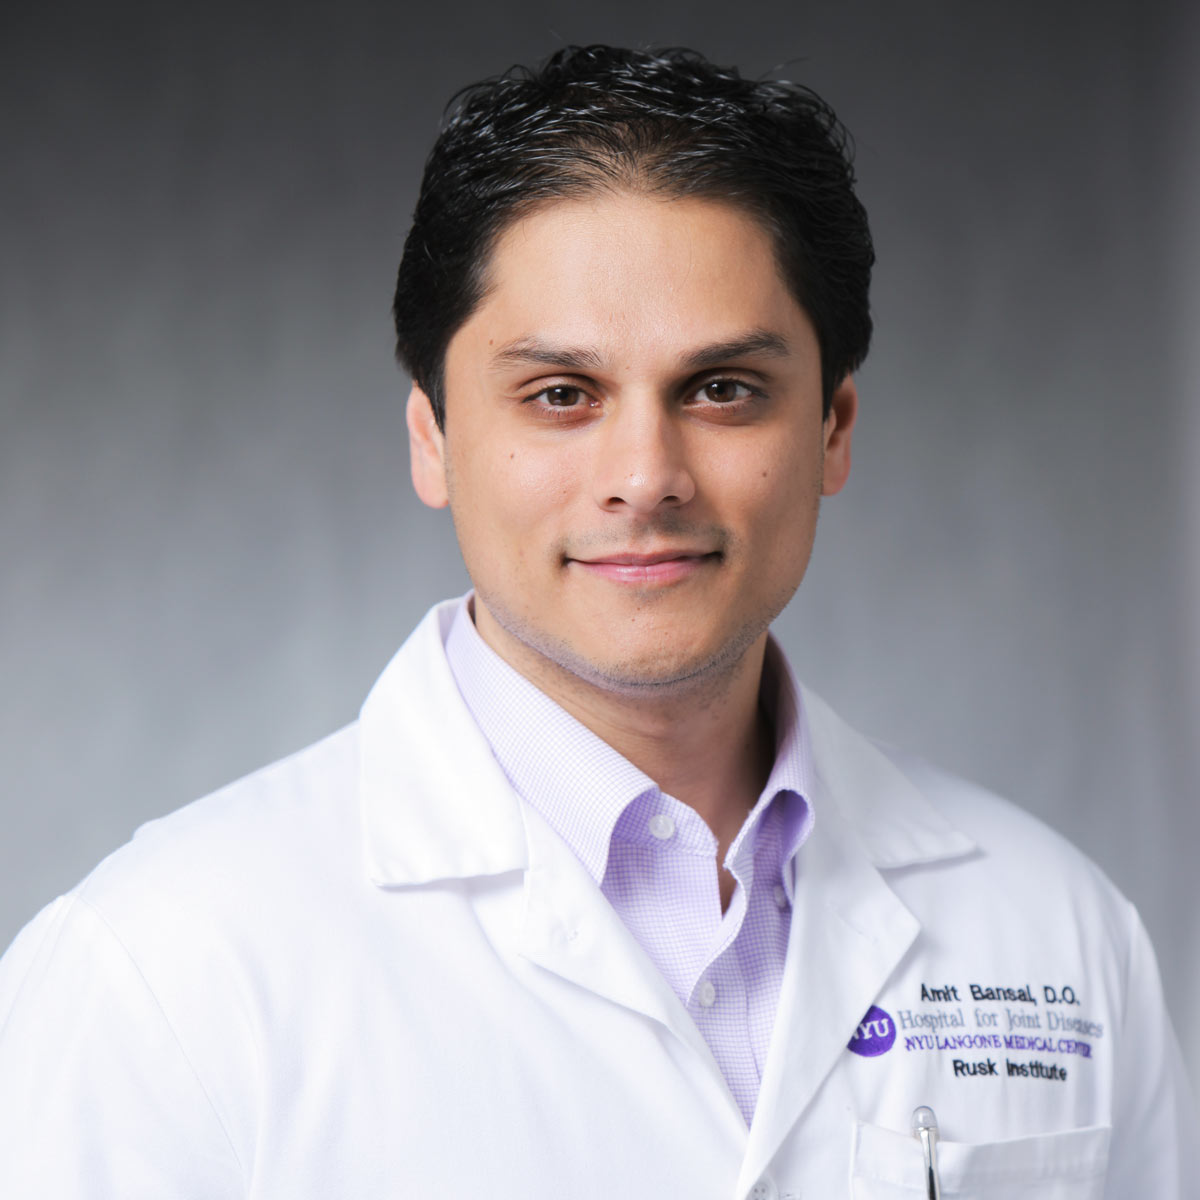 Amit K. Bansal,DO. Orthopedic Rehabilitation, Physical Medicine and Rehabilitation